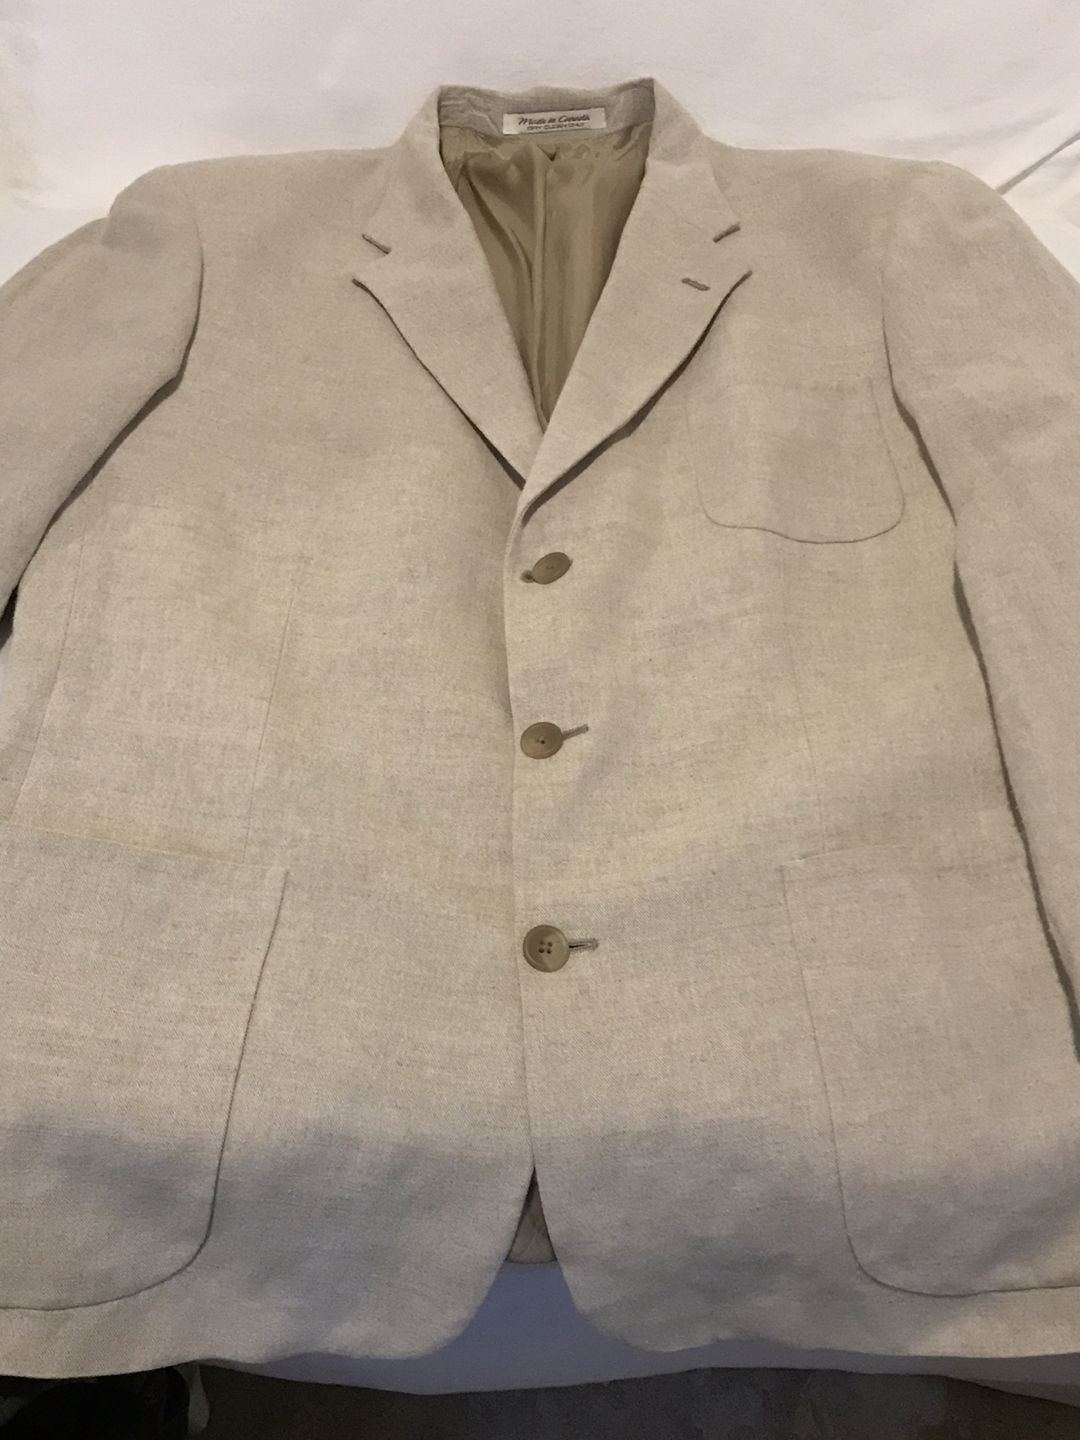 Polo Ralph Lauren linen jacket